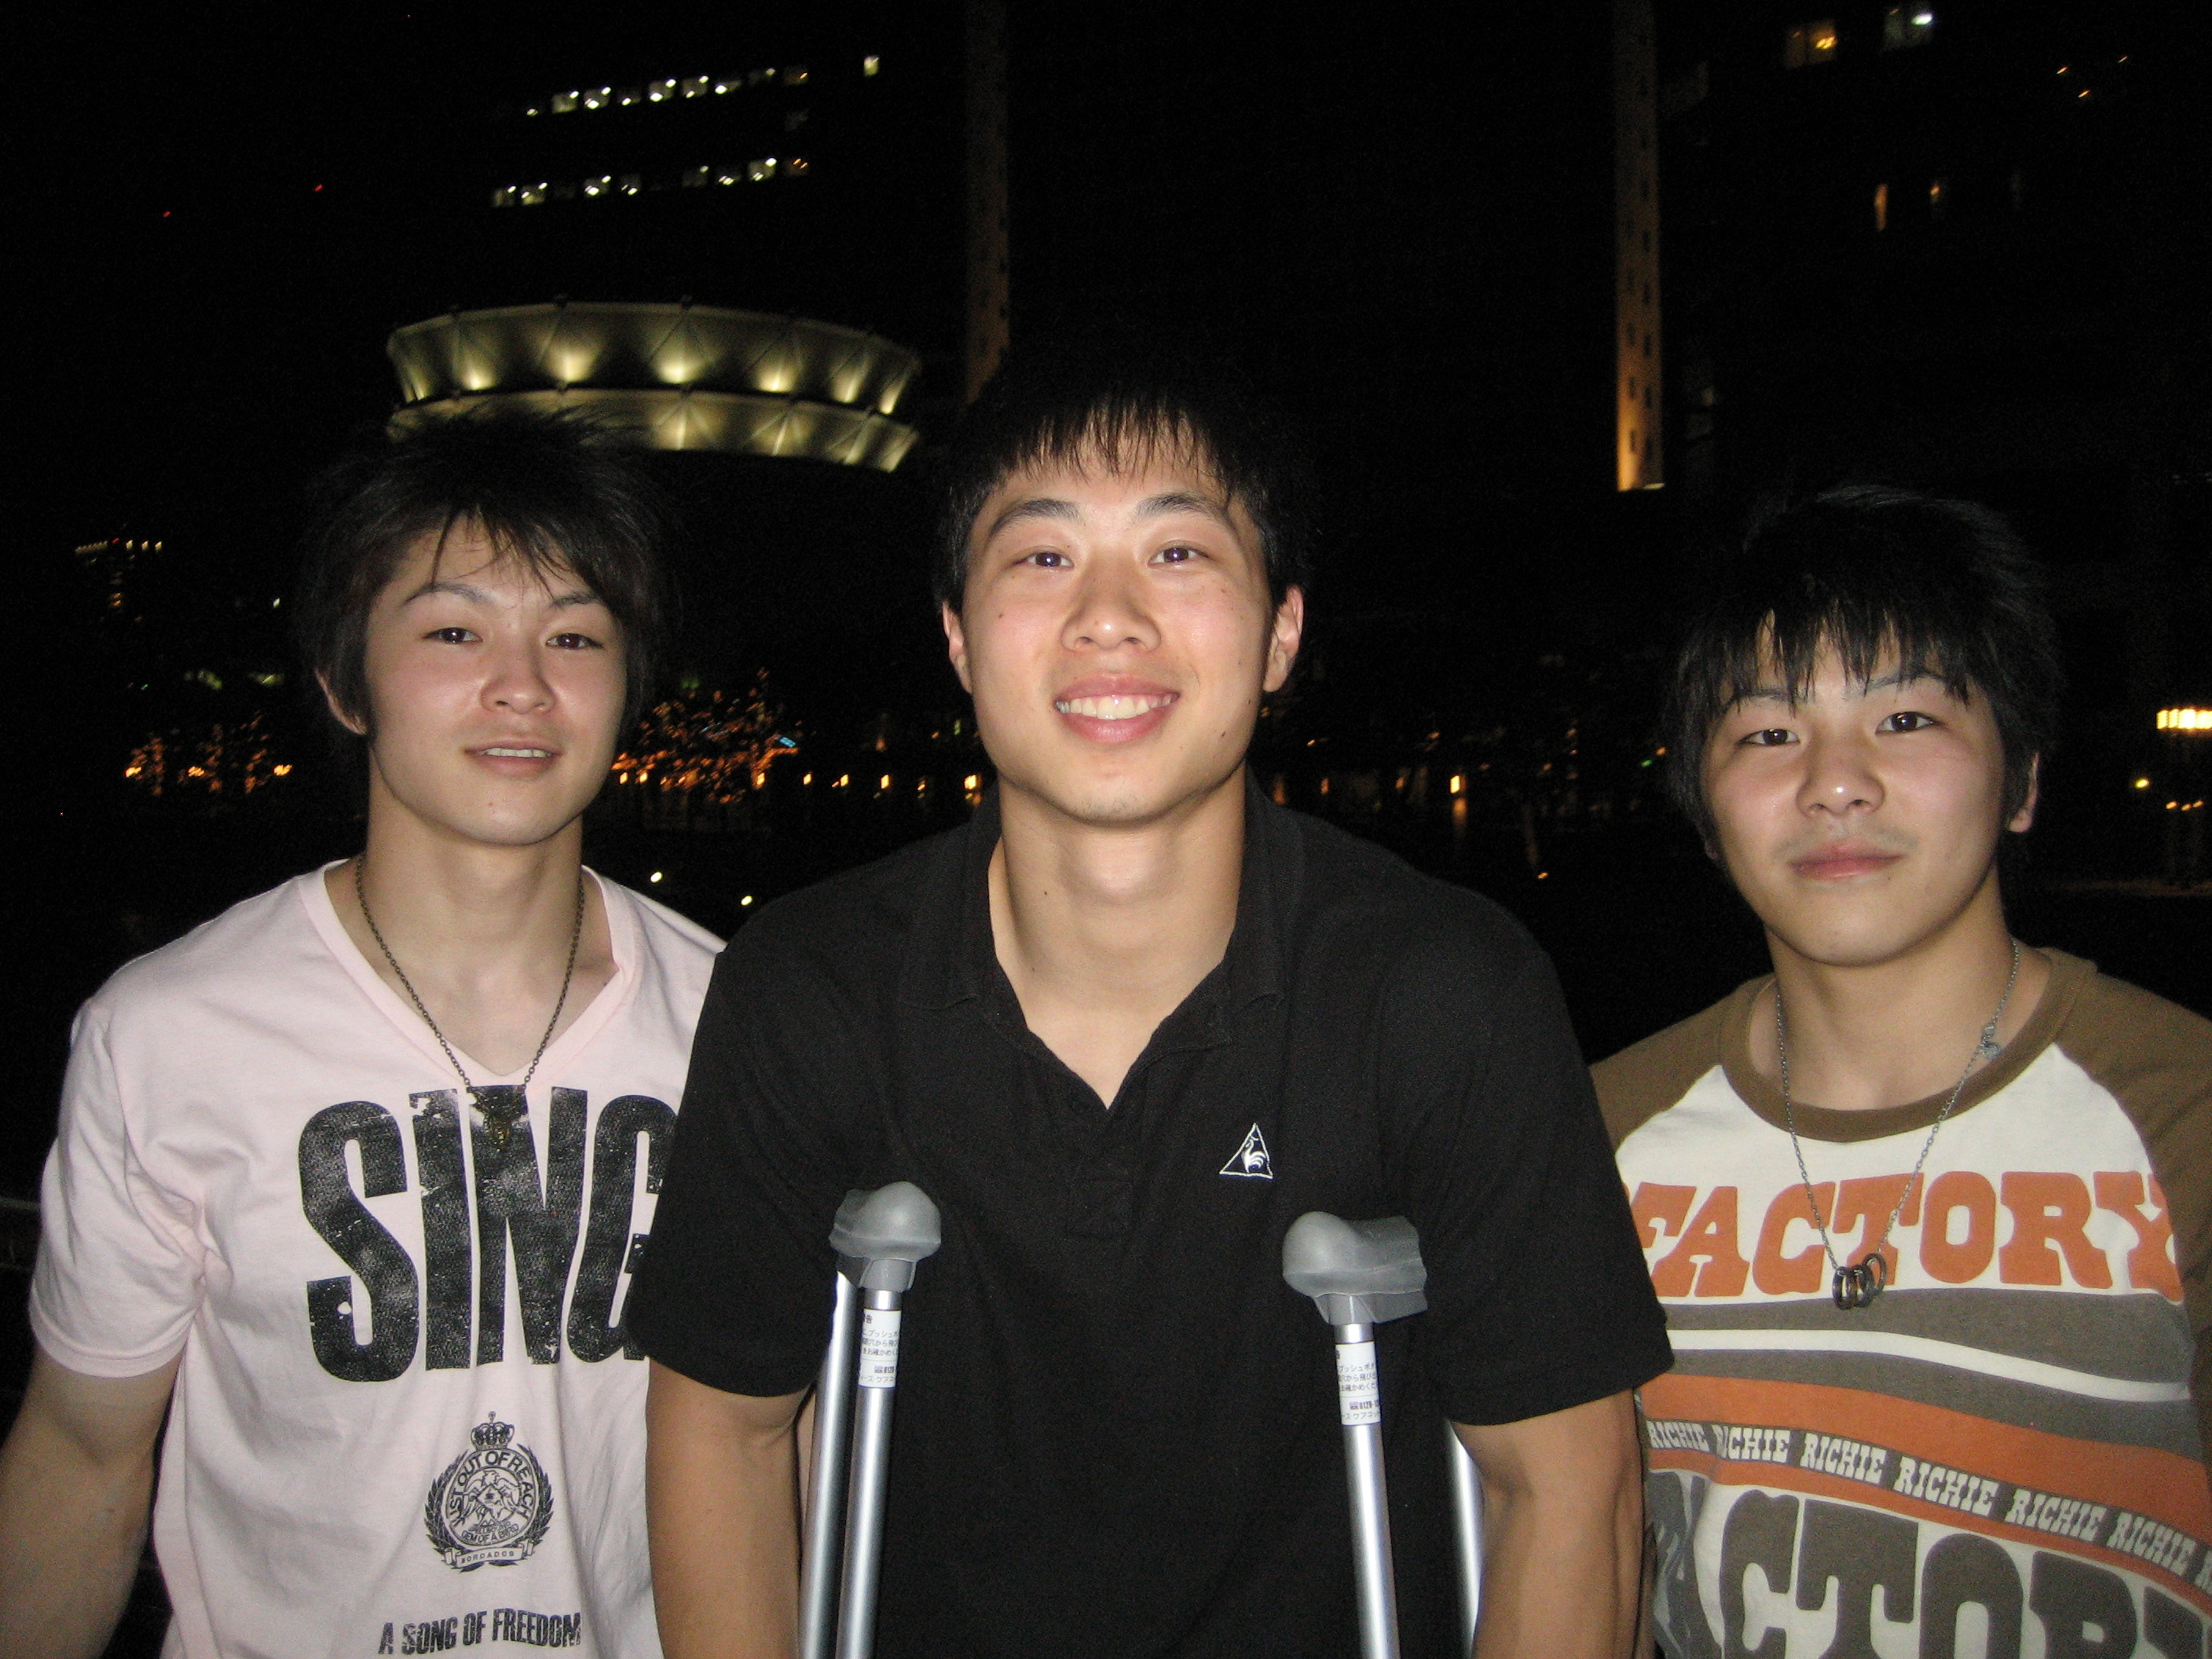 Left - Kohei Uchimura (Olympic silver medalist), Center - Me, Right - Koji Yamamuro